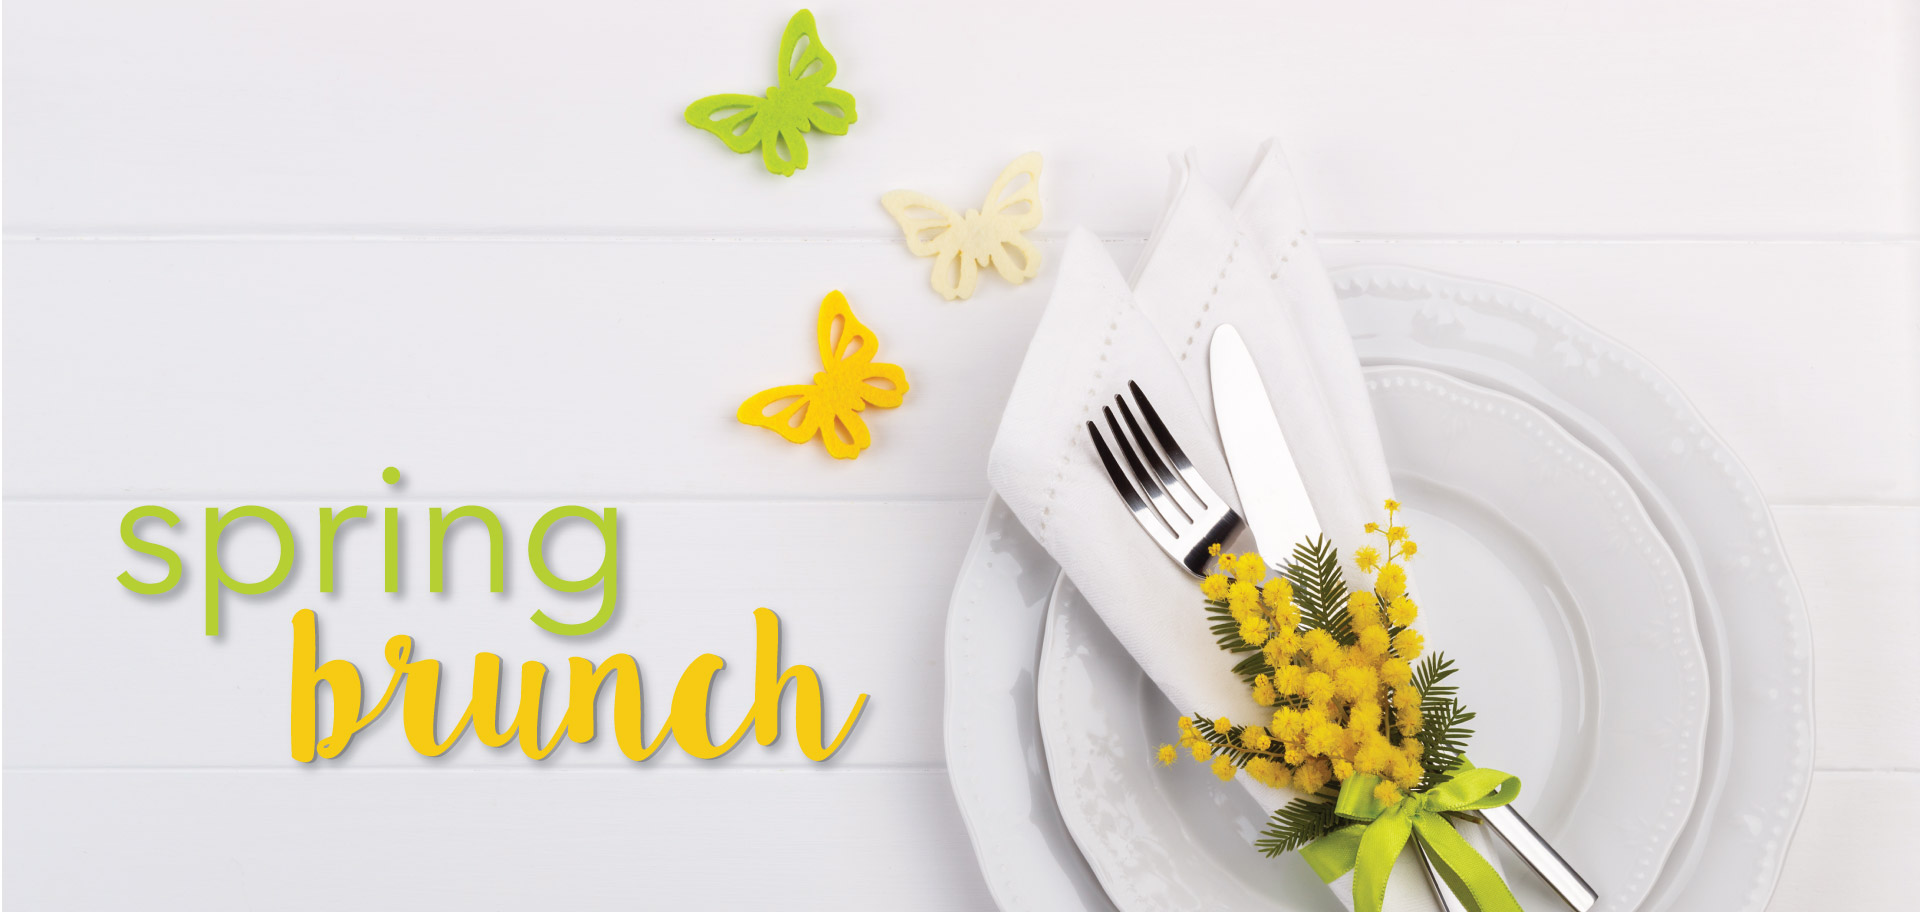 Spring brunch header